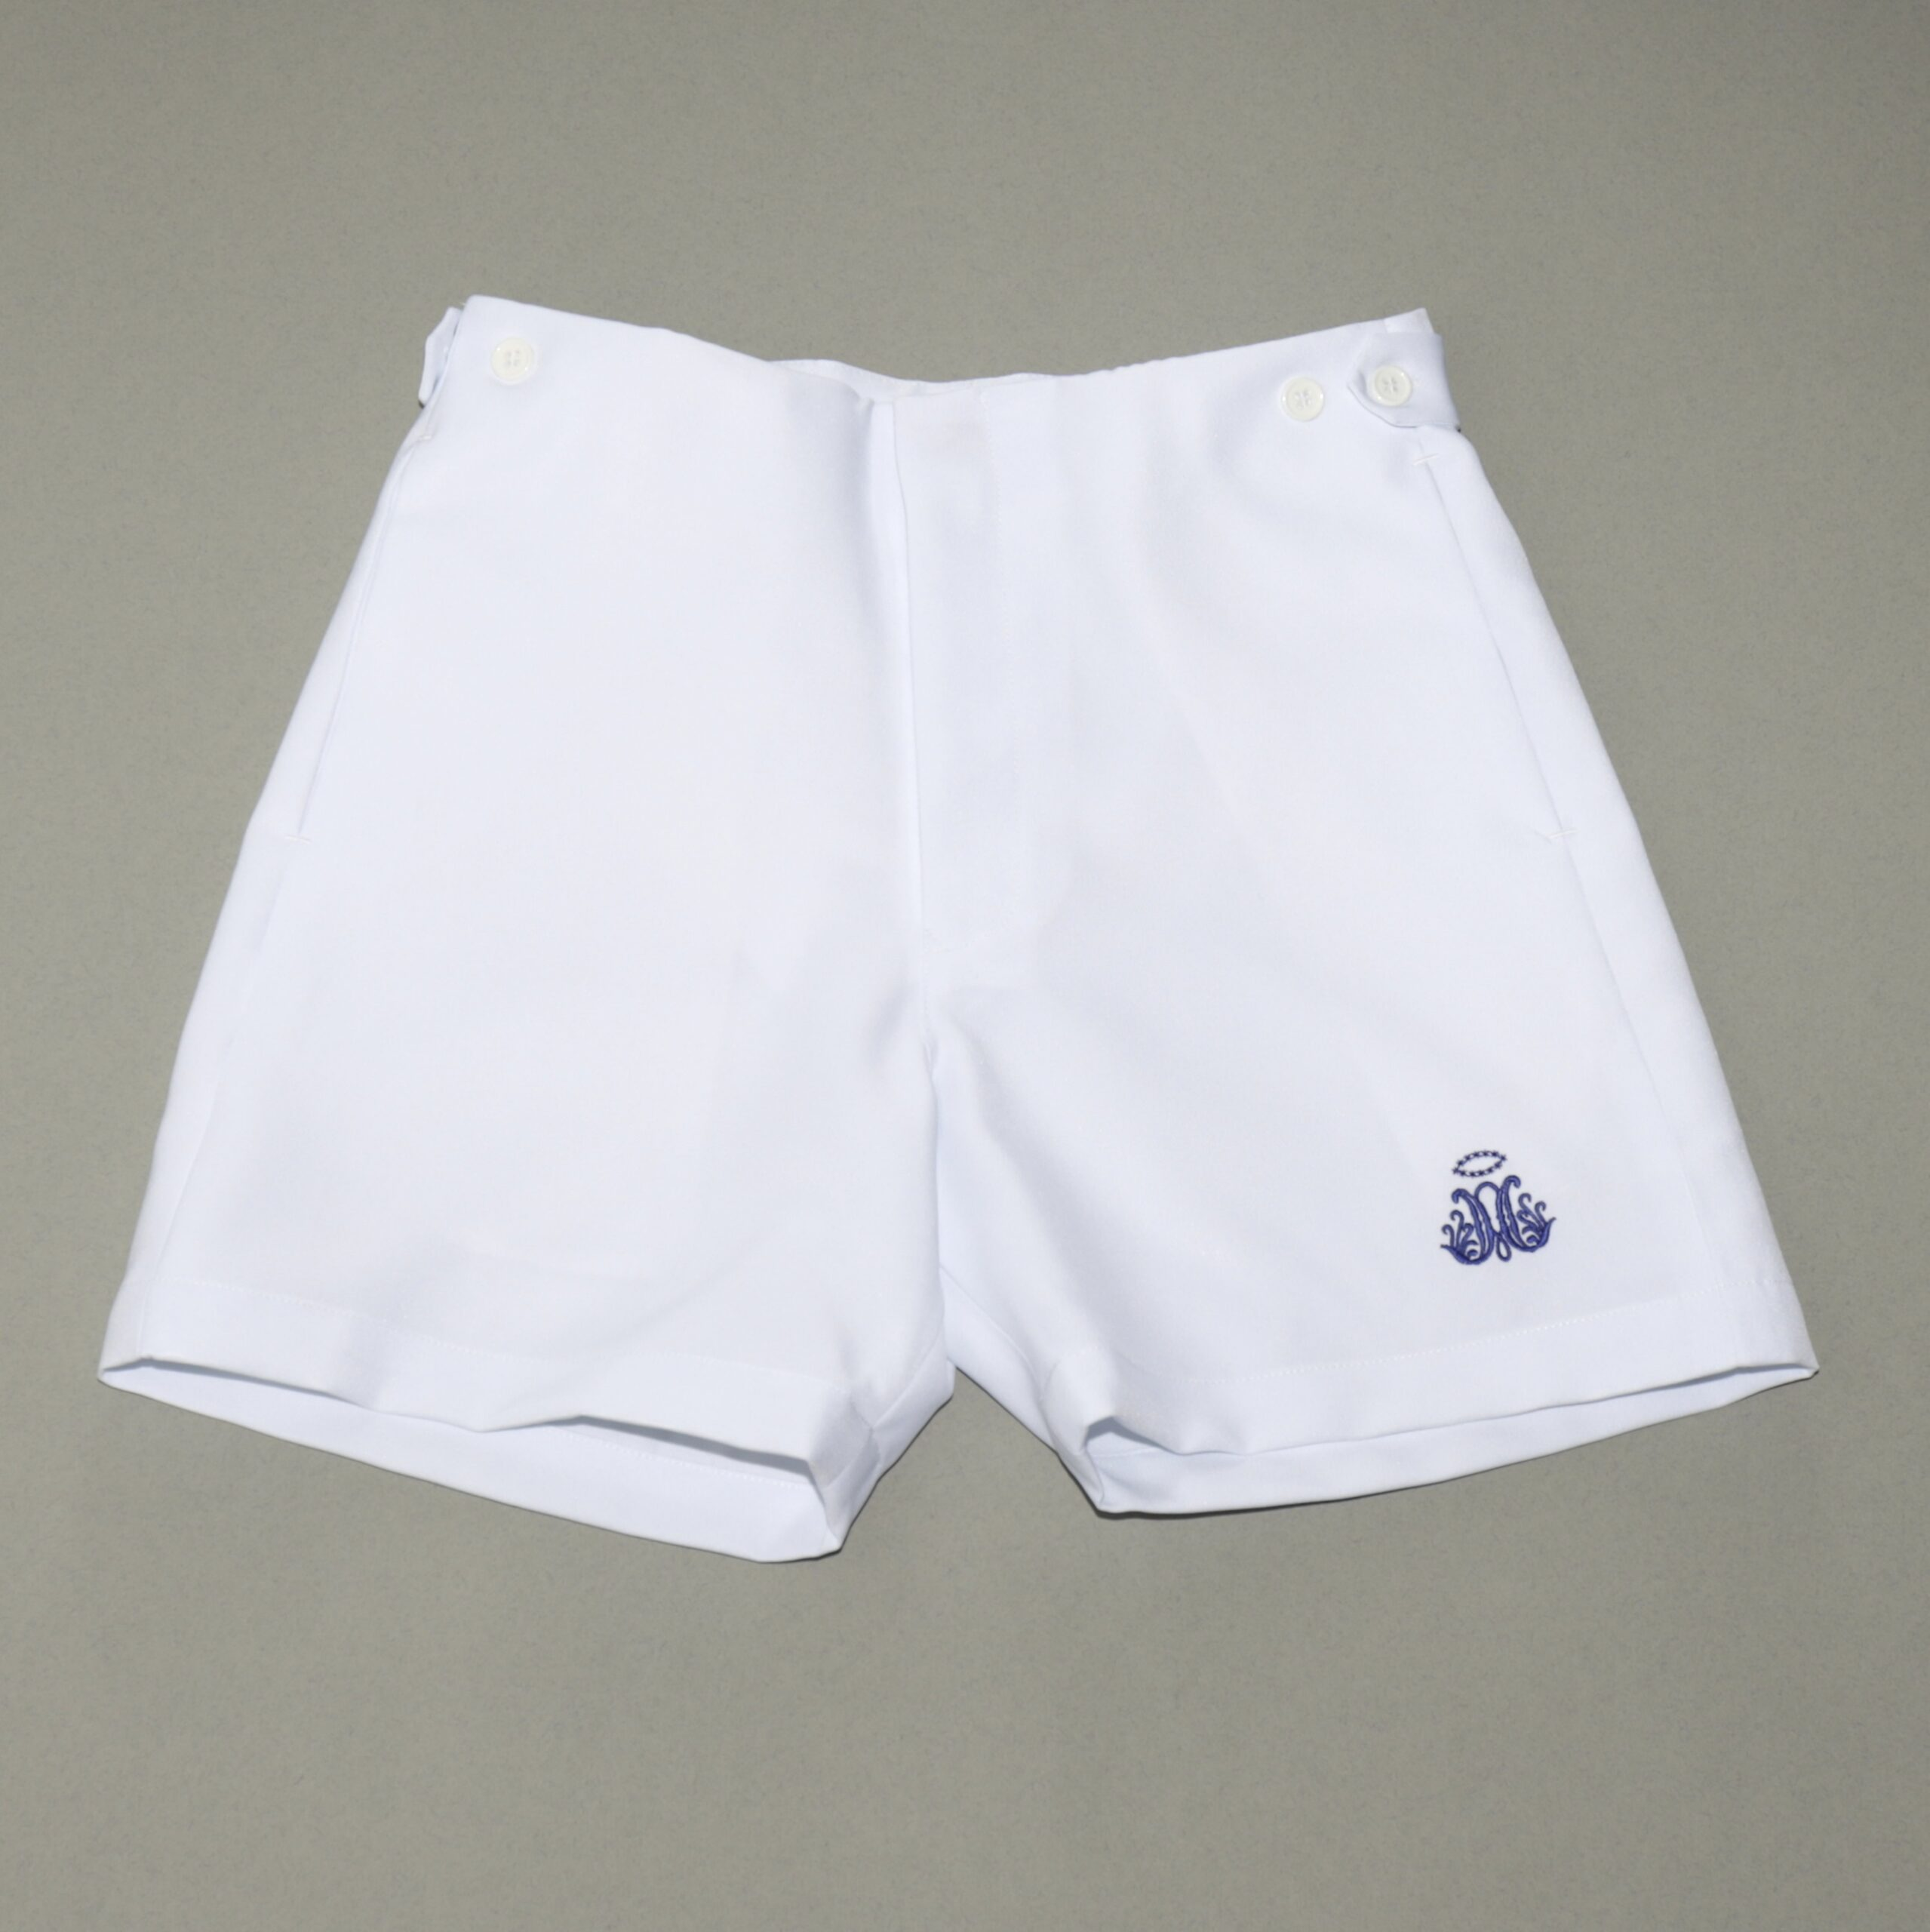 MSHP SHORTS - Shanghai School Uniforms